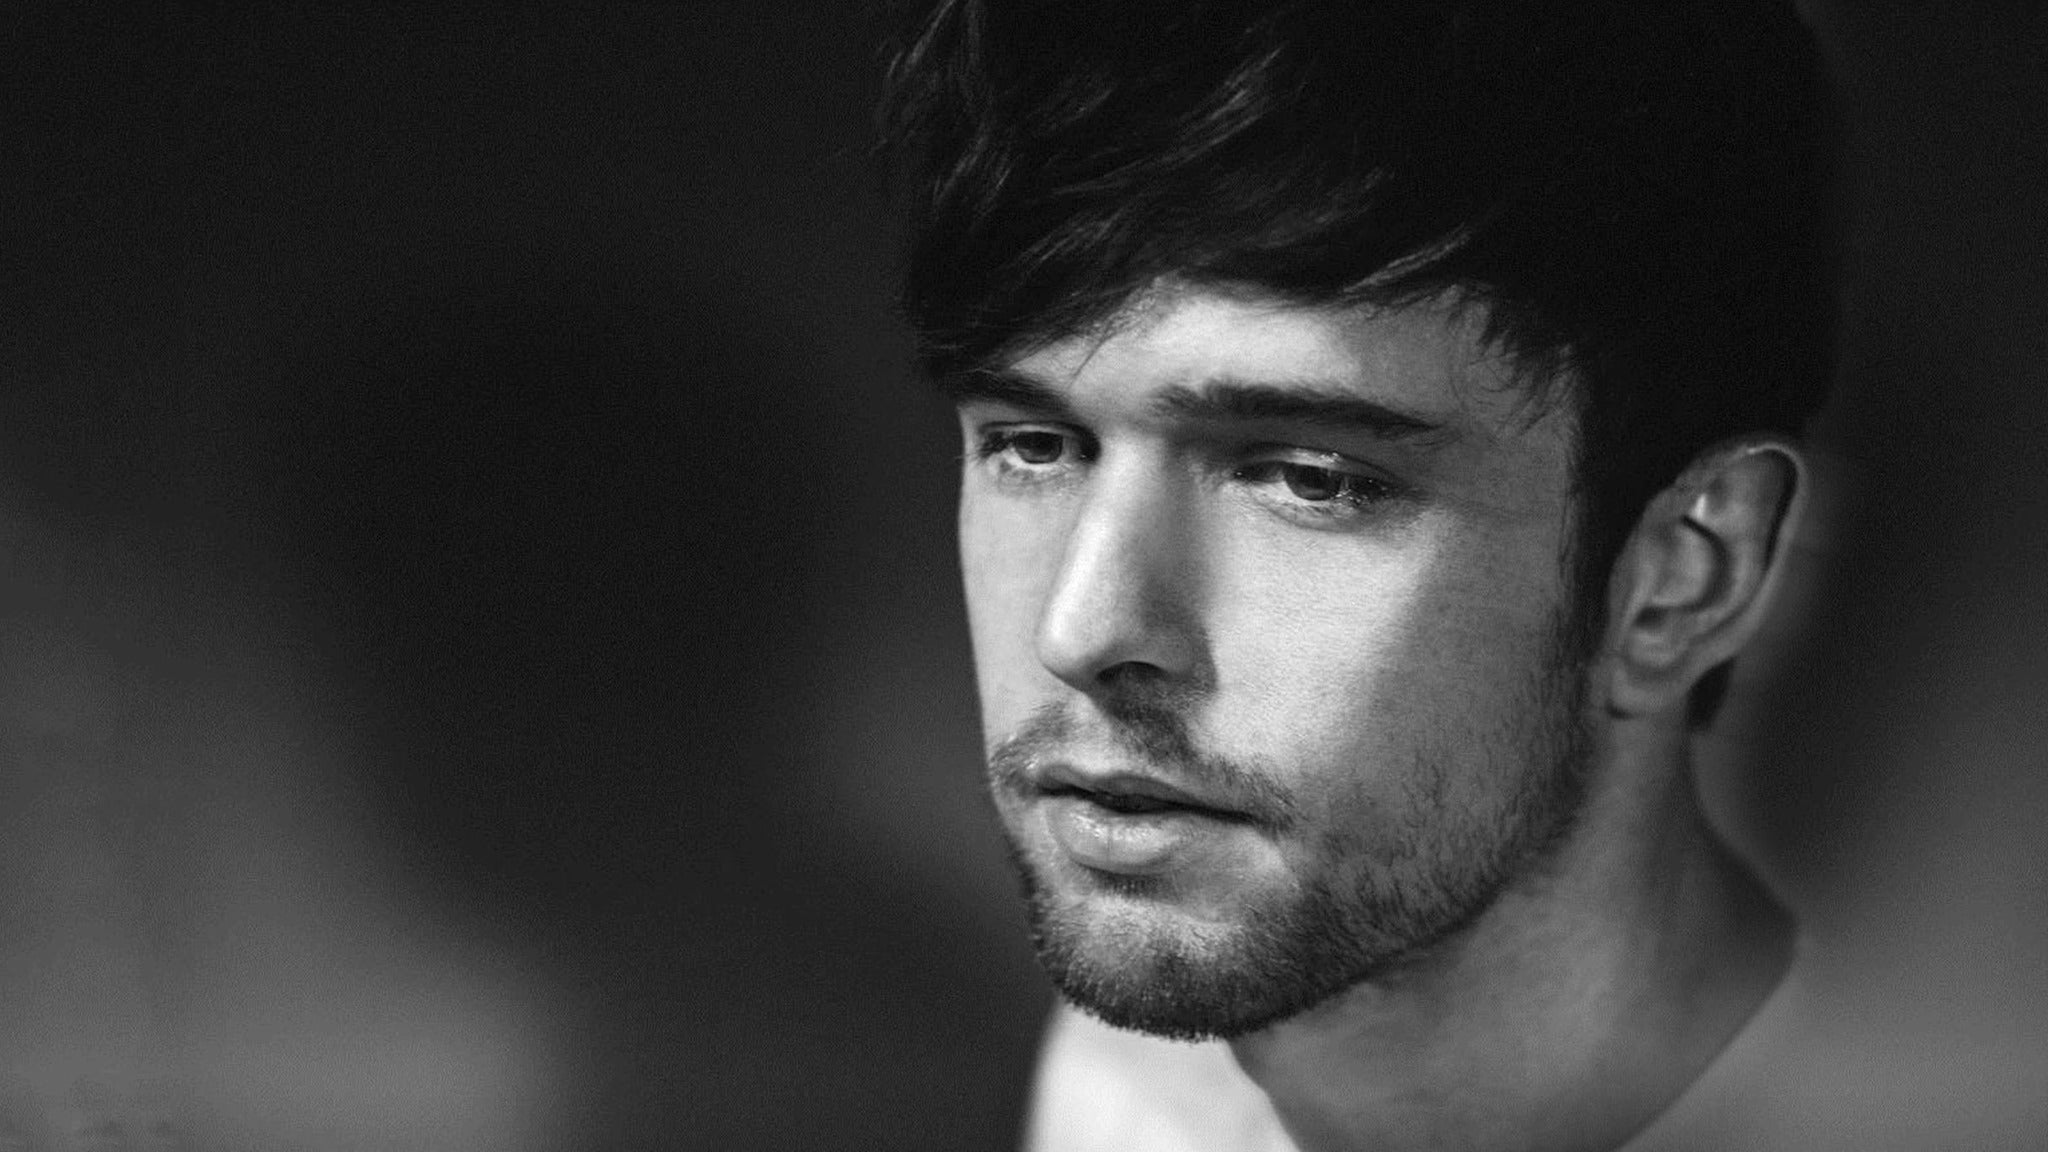 89.9 KCRW presents James Blake at Hollywood Palladium